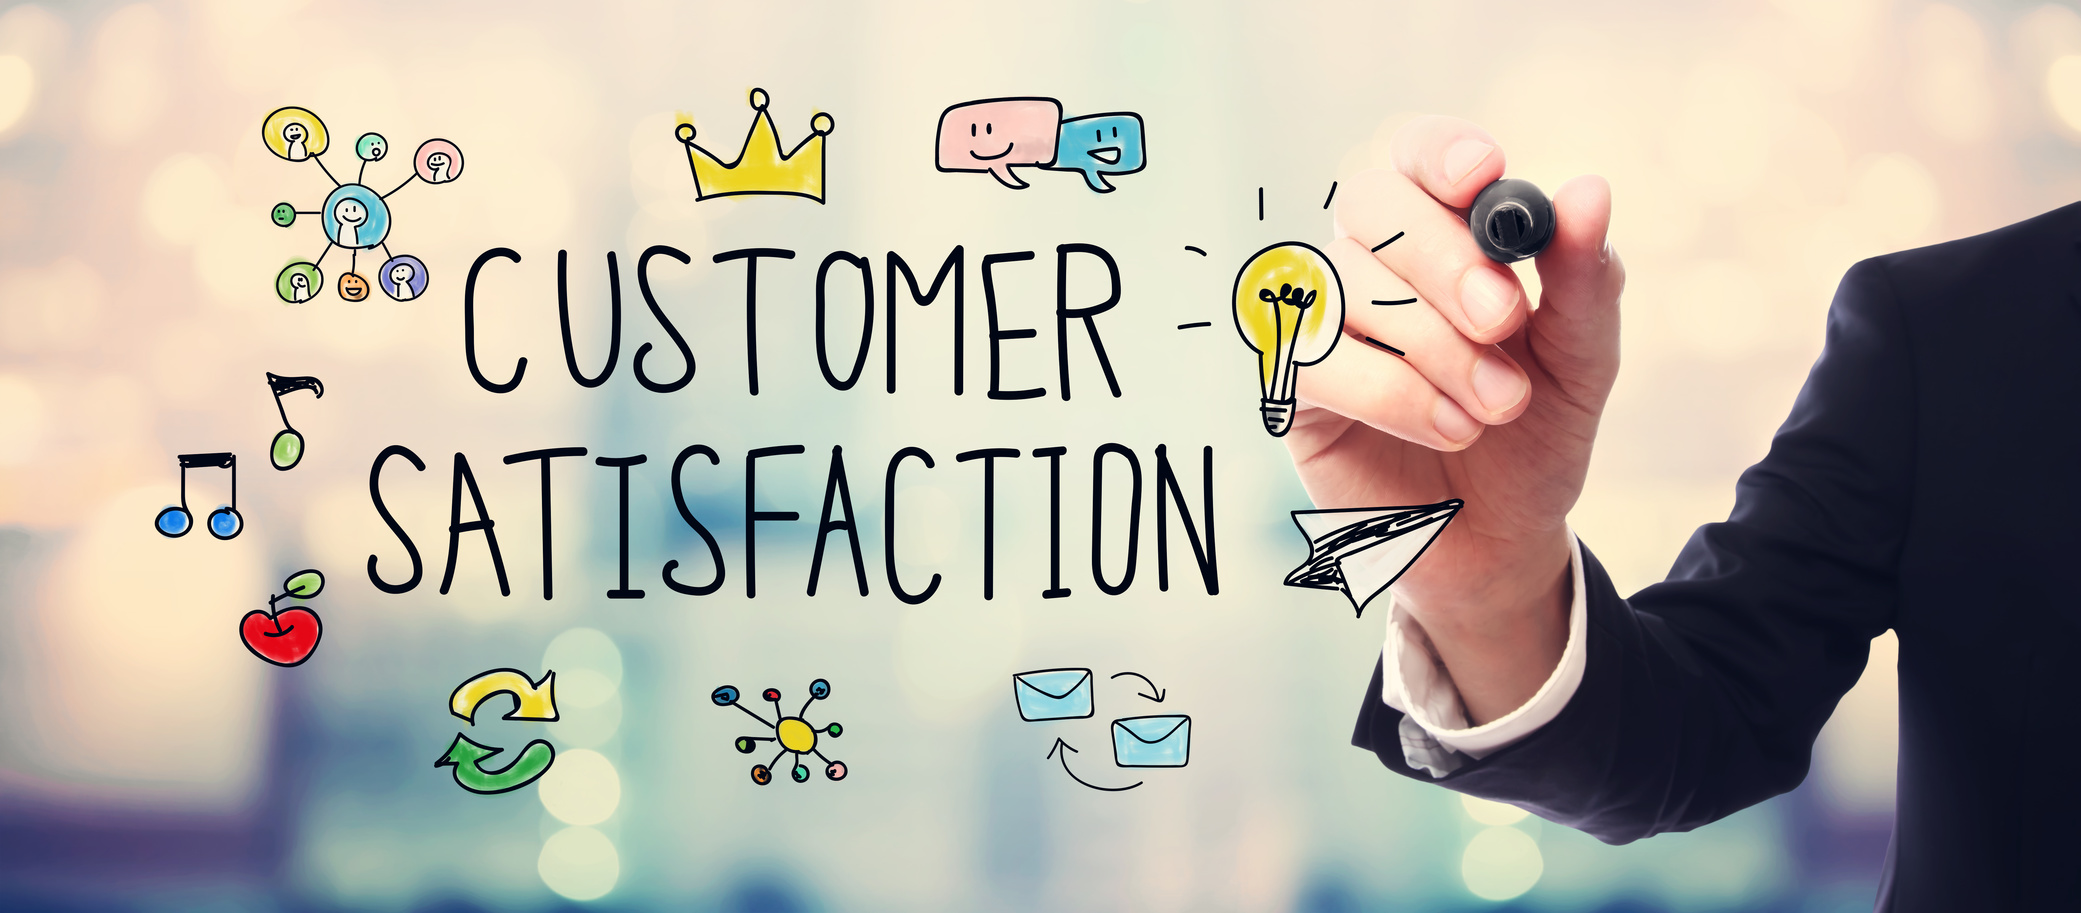 10 Metrics To Measure Customer Satisfaction The Right Way